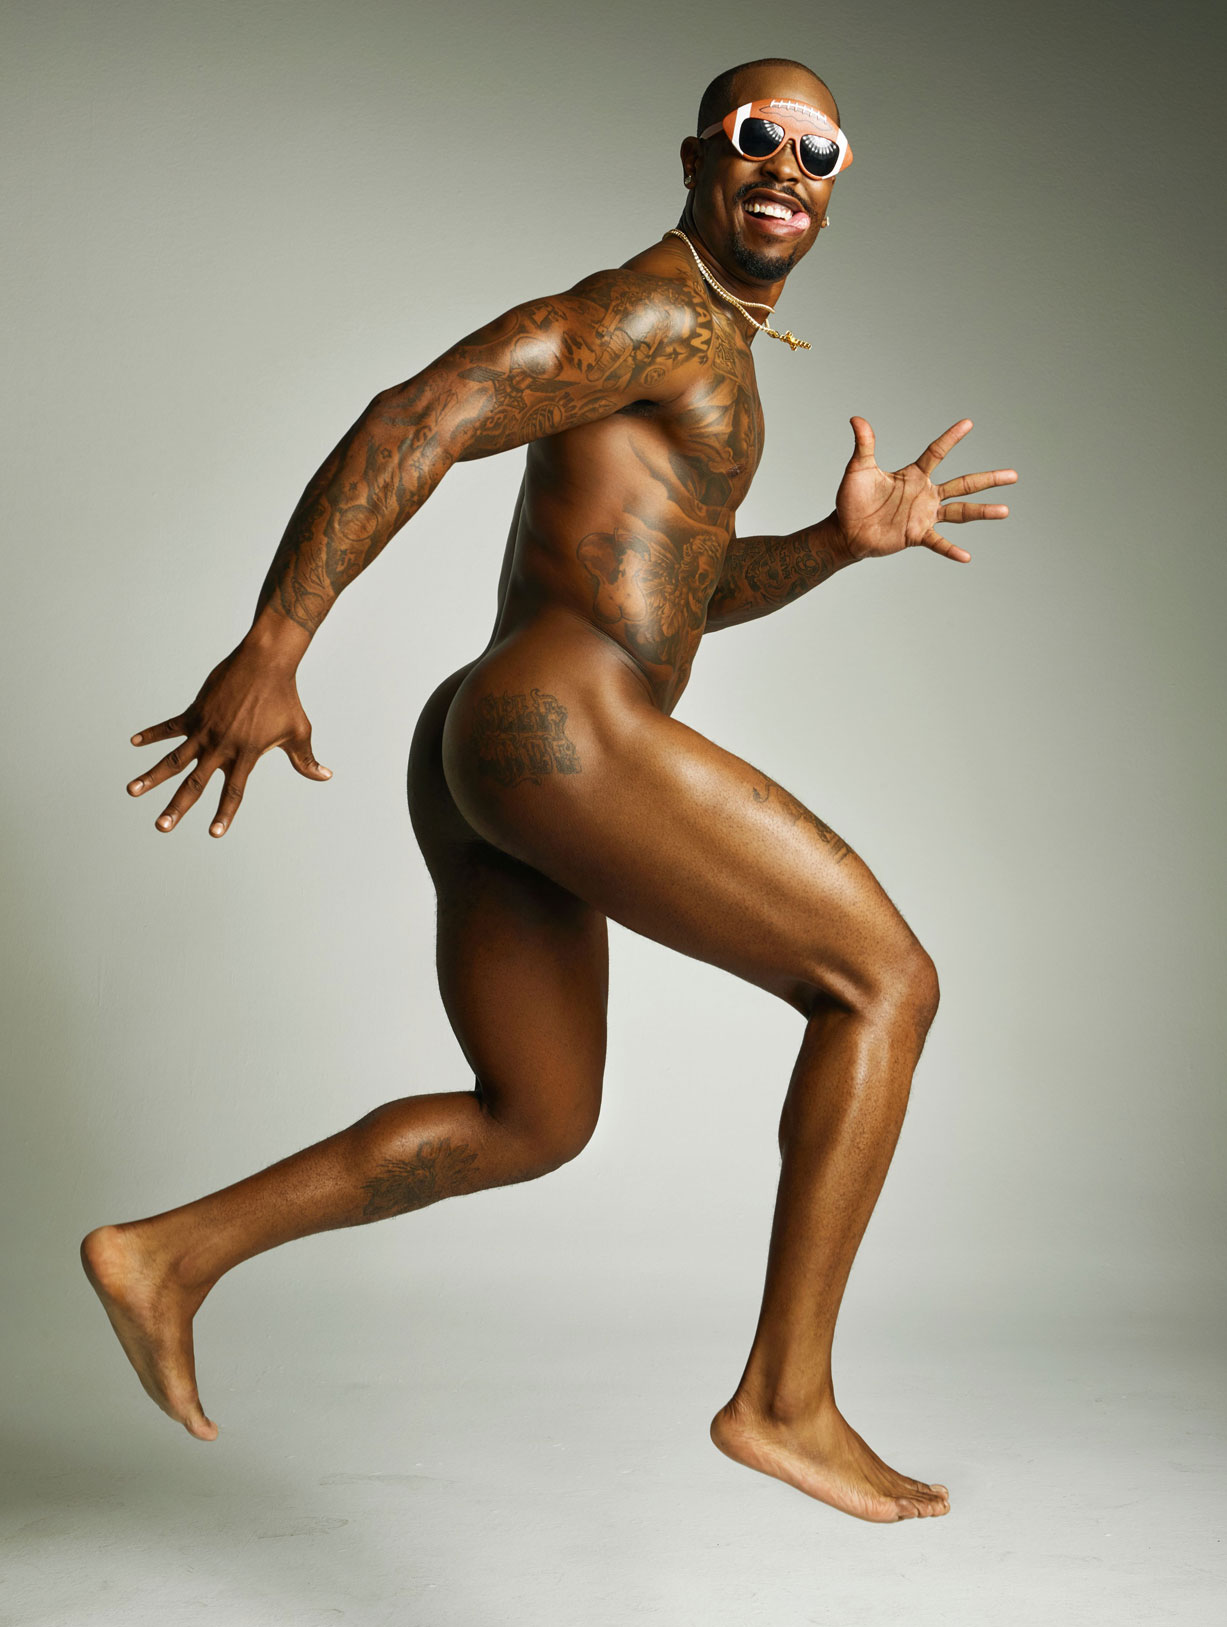 ESPN Magazine The Body Issue 2016 - Von Miller / Вон Миллер - Культ тела журнала ESPN